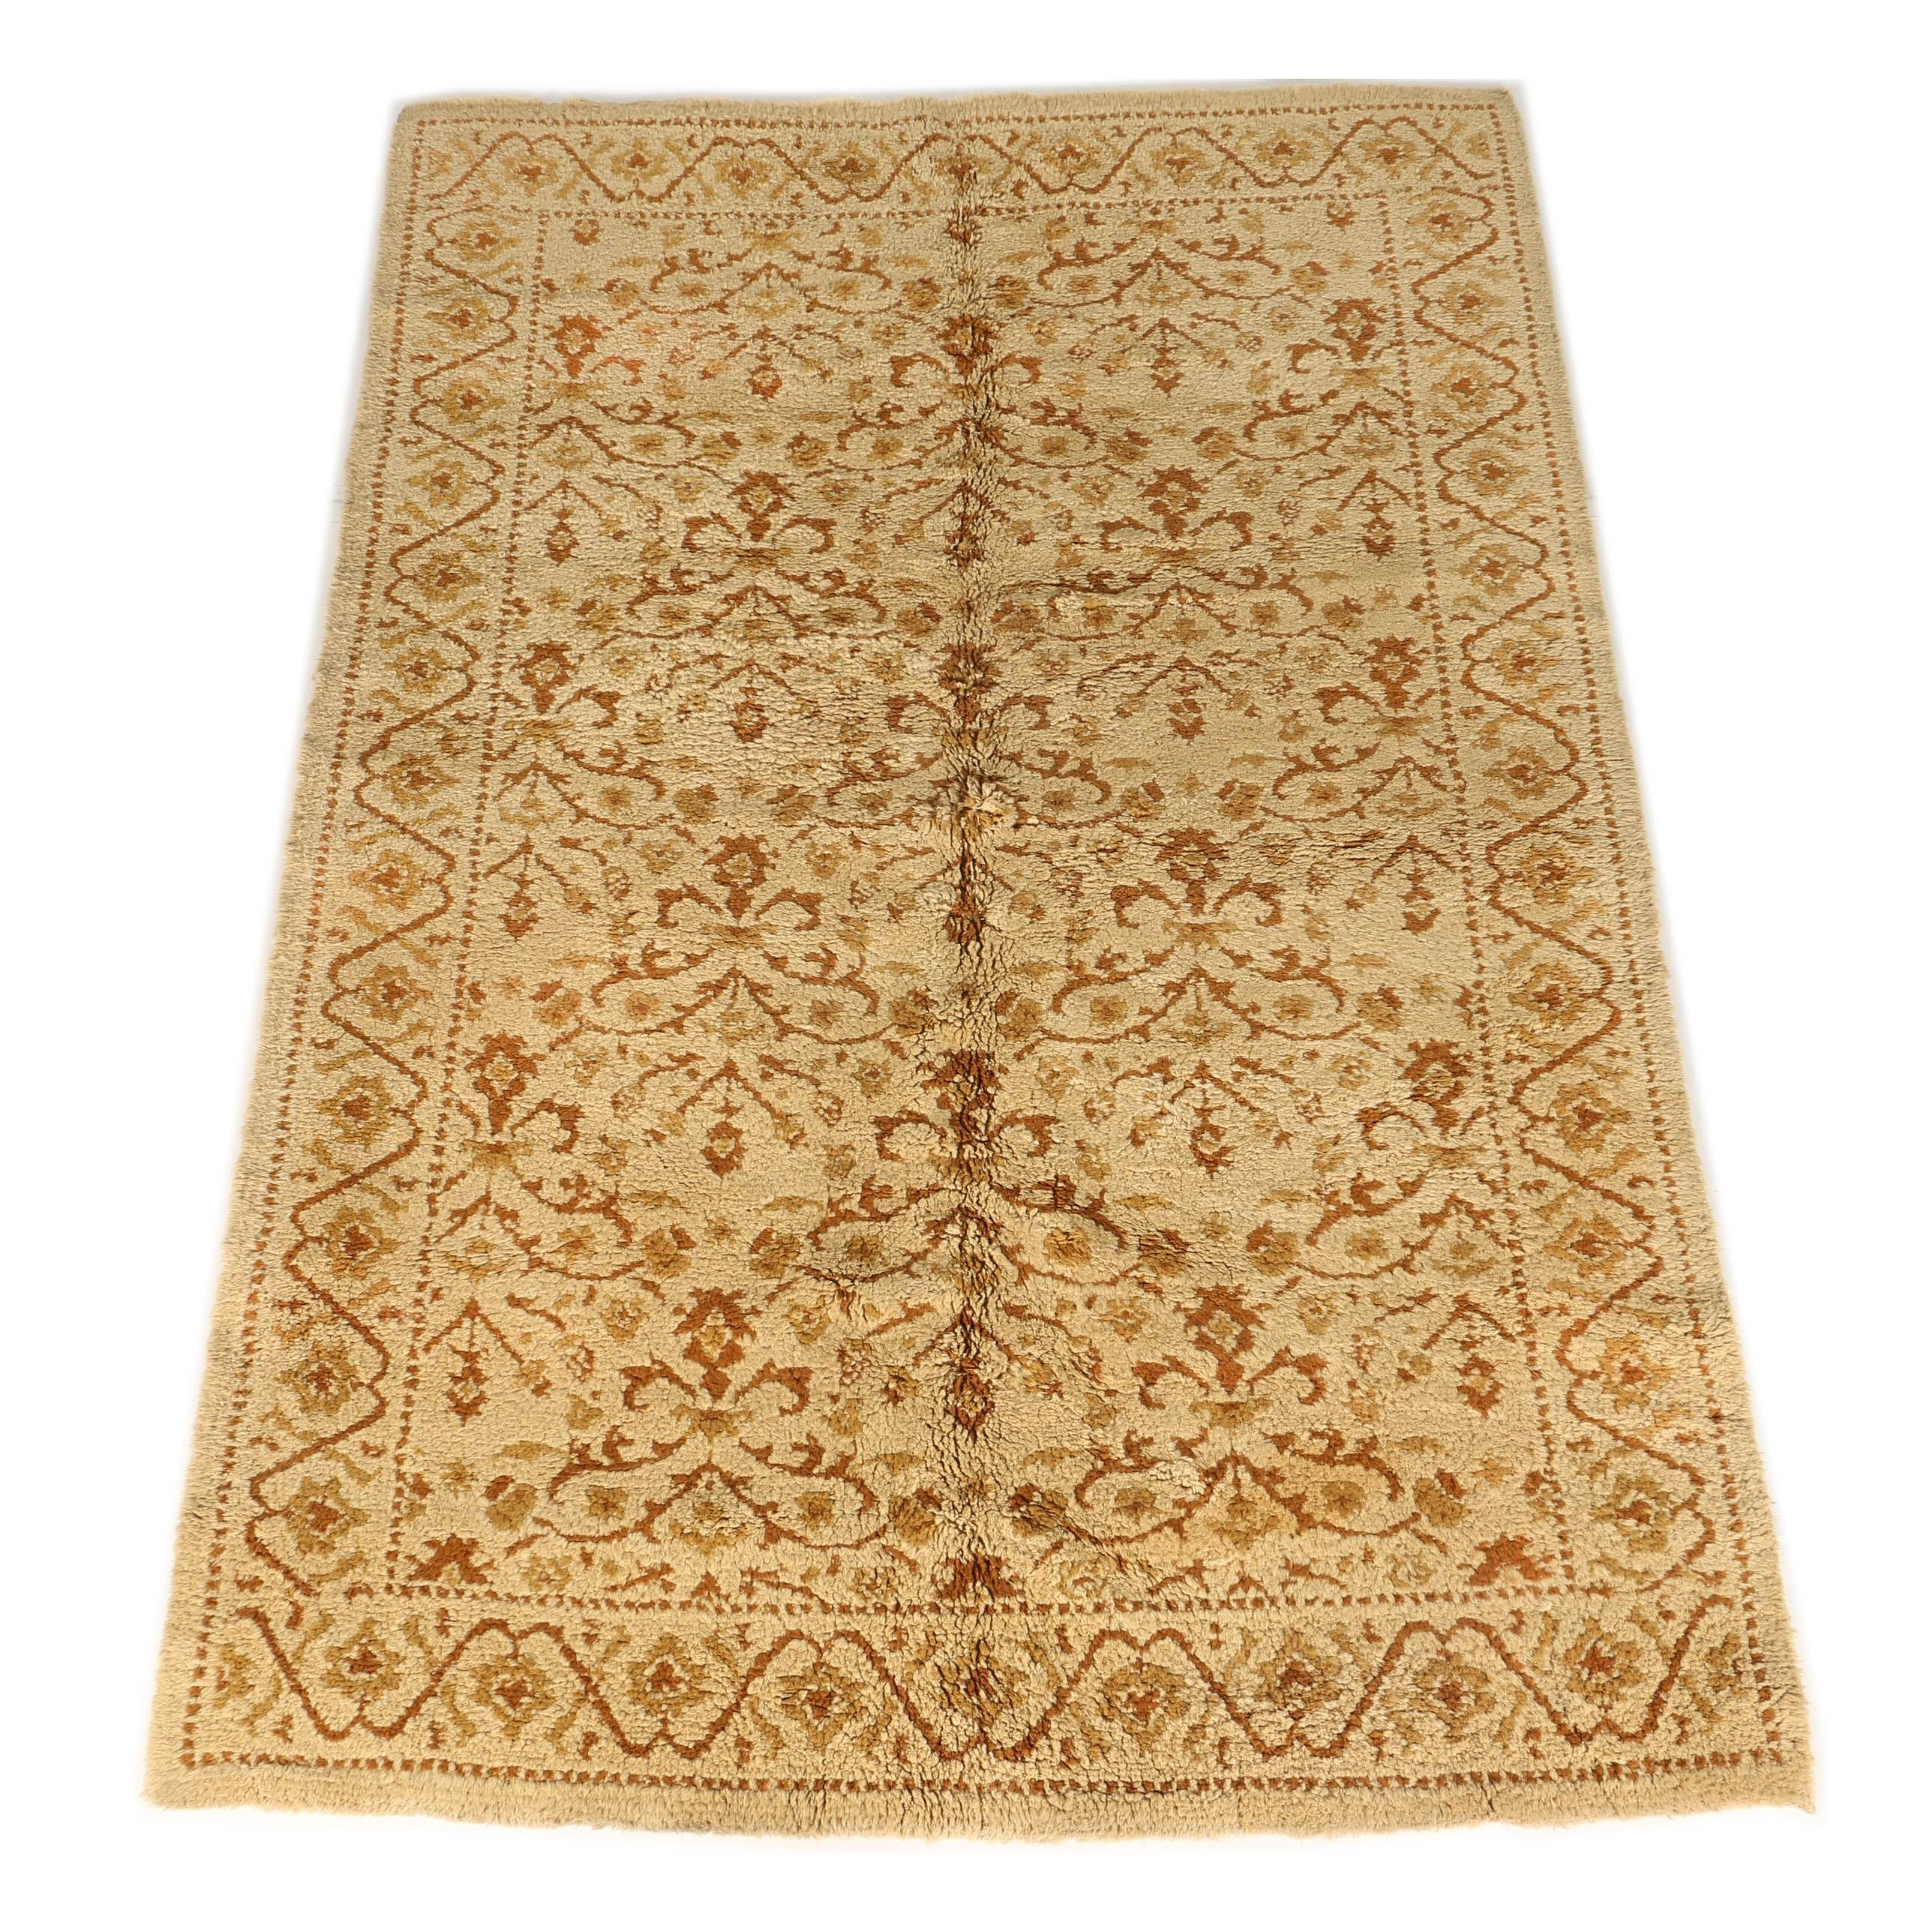 Vintage Hand-Knotted Moroccan Wool Rug